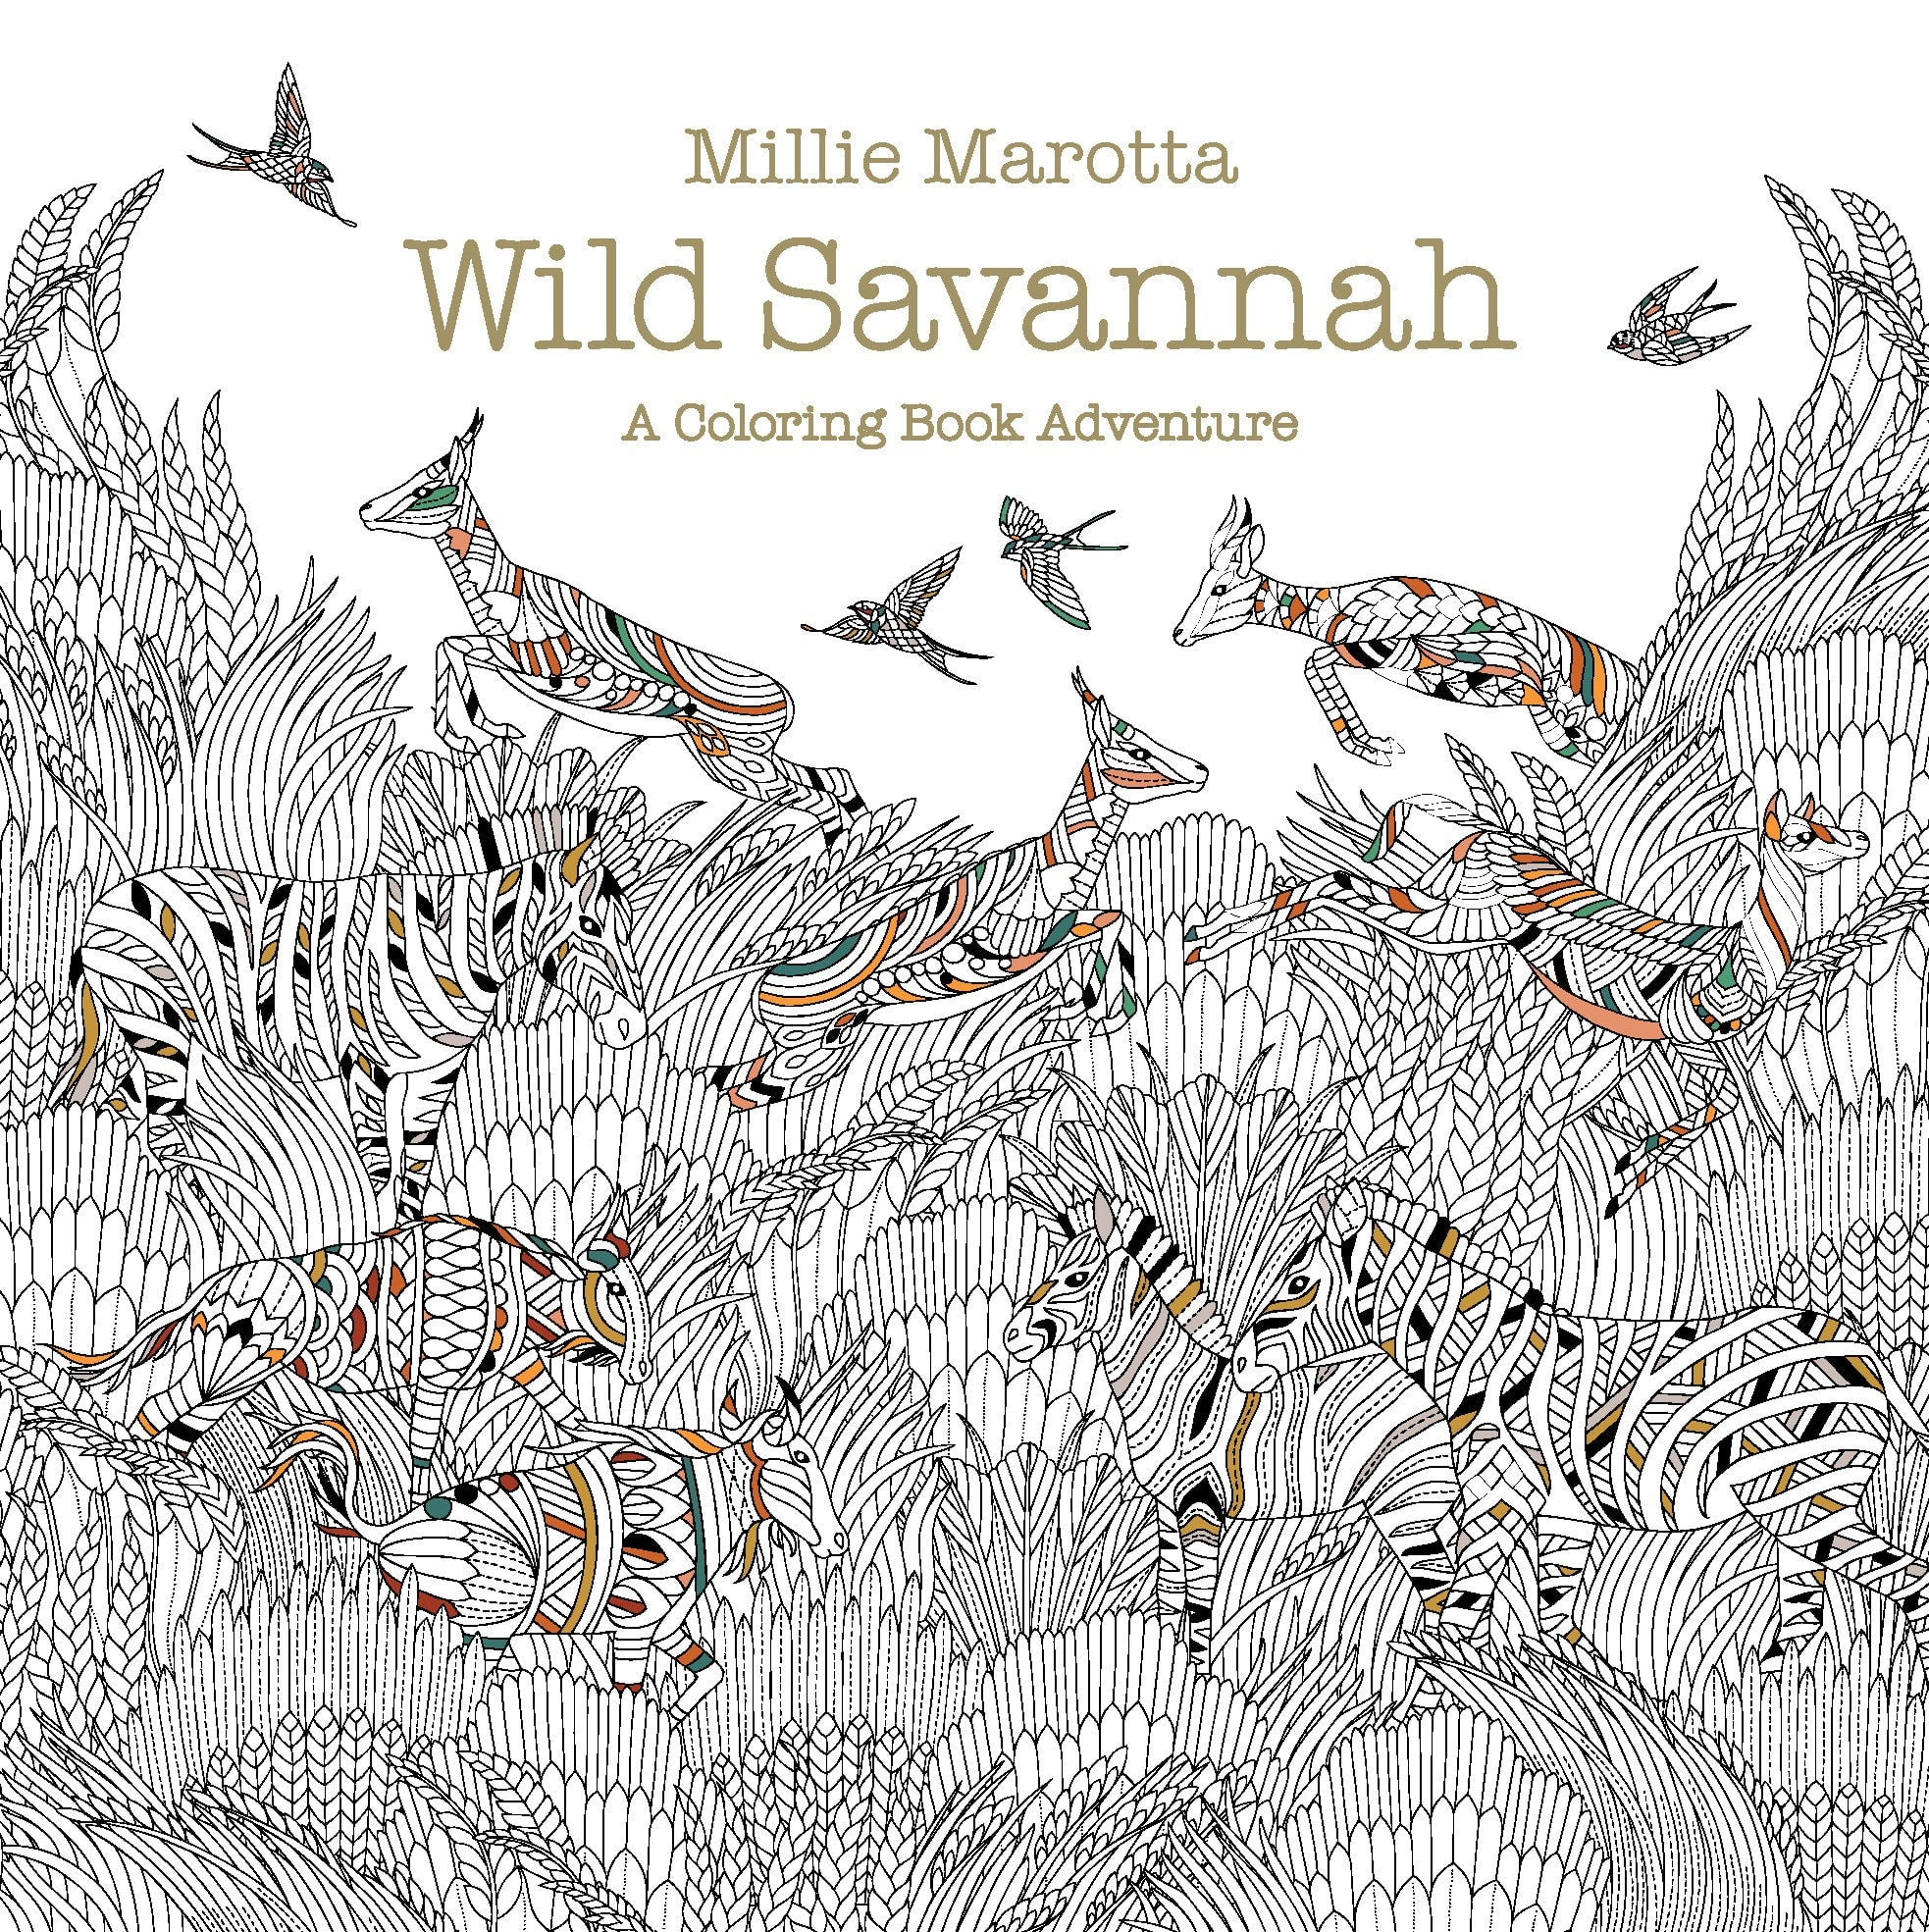 Wild Savannah A Coloring Book Adventure